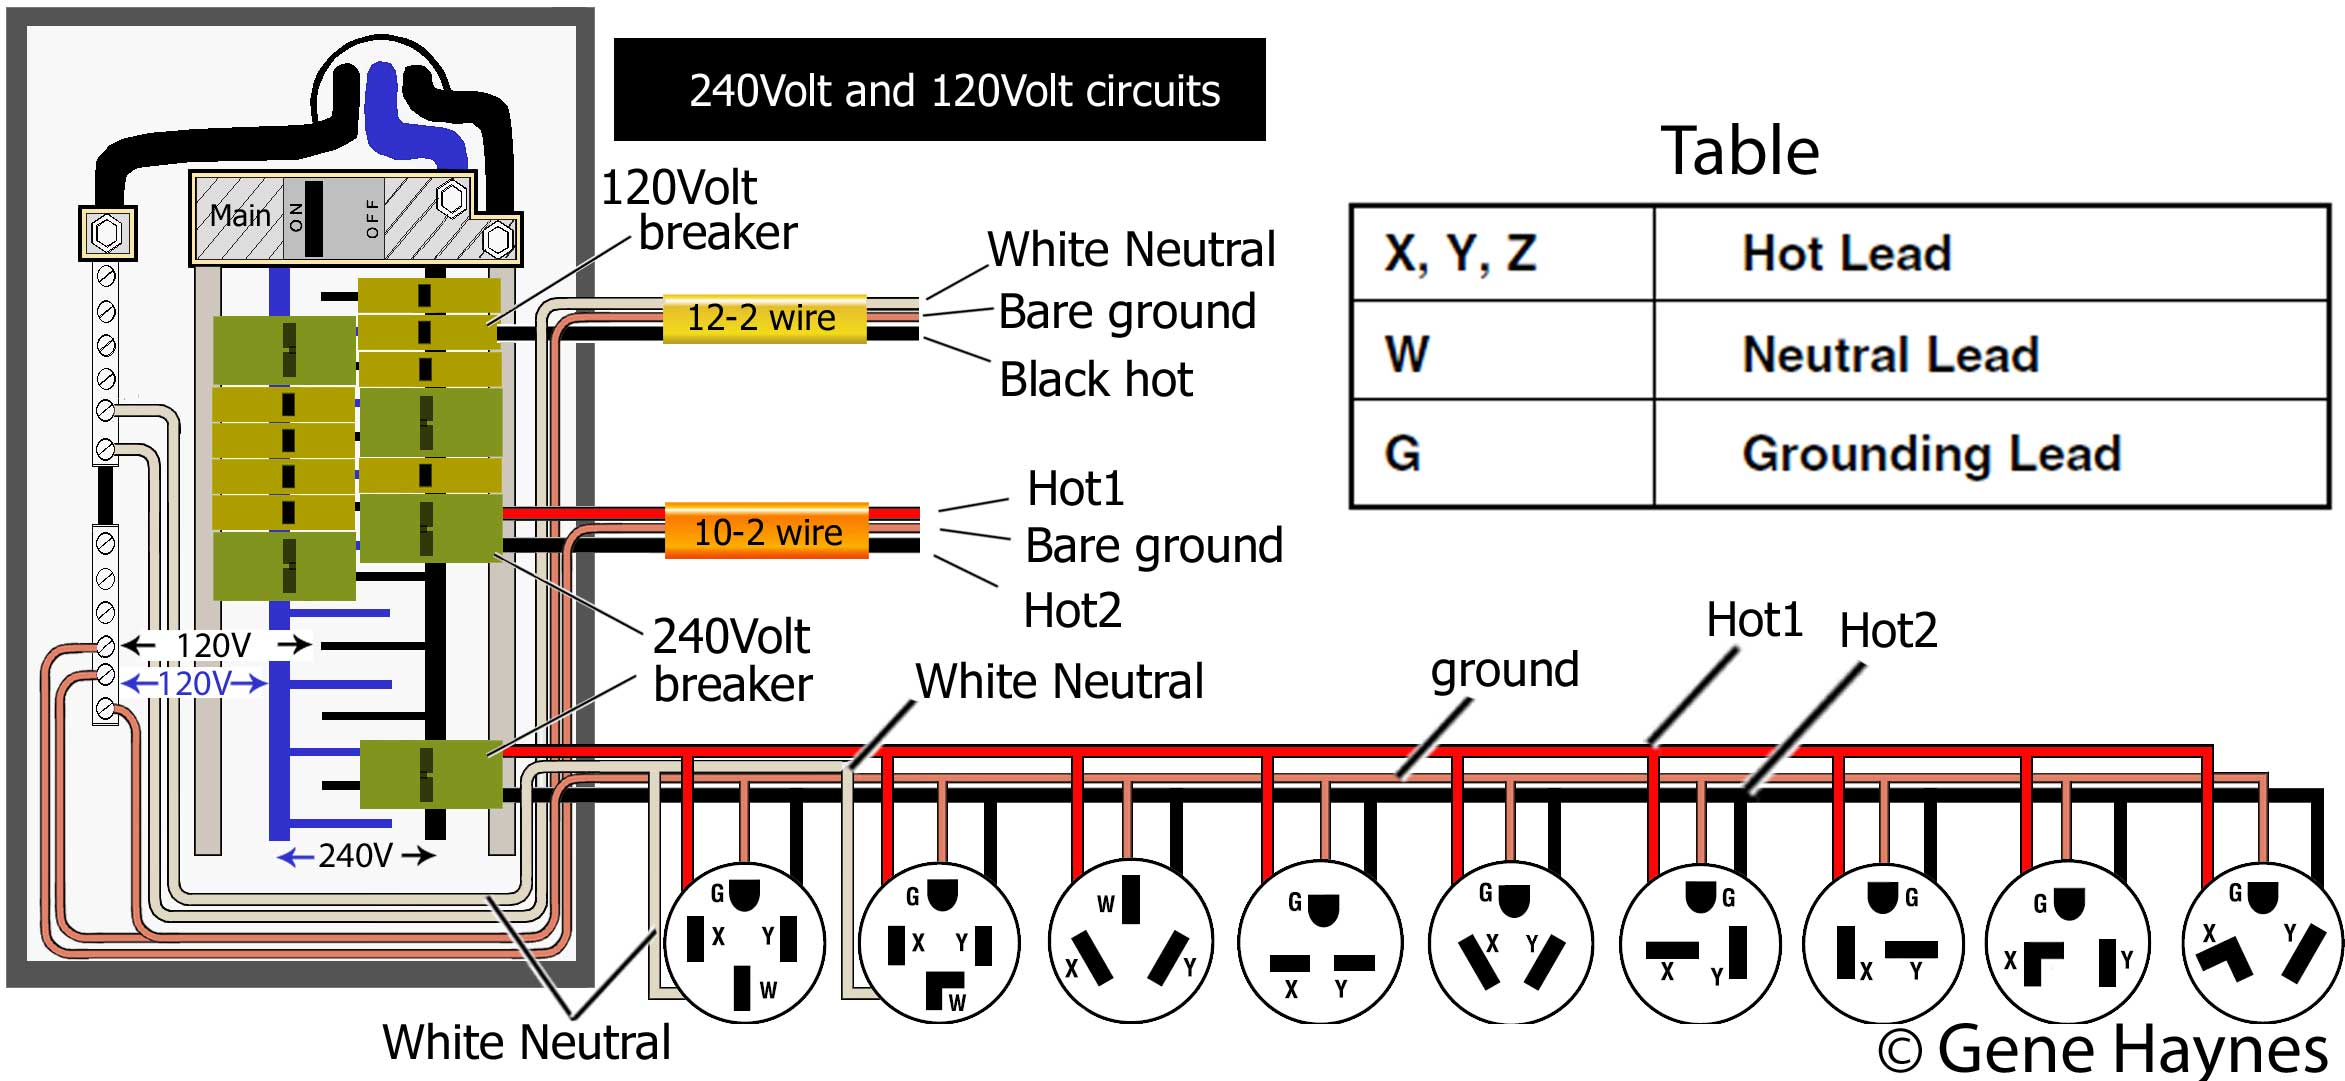 Flat blade 4 240v 1 phase wiring diagram 3 wire 220 volt wiring \u2022 free wiring wiring diagram for 220v outlet at readyjetset.co